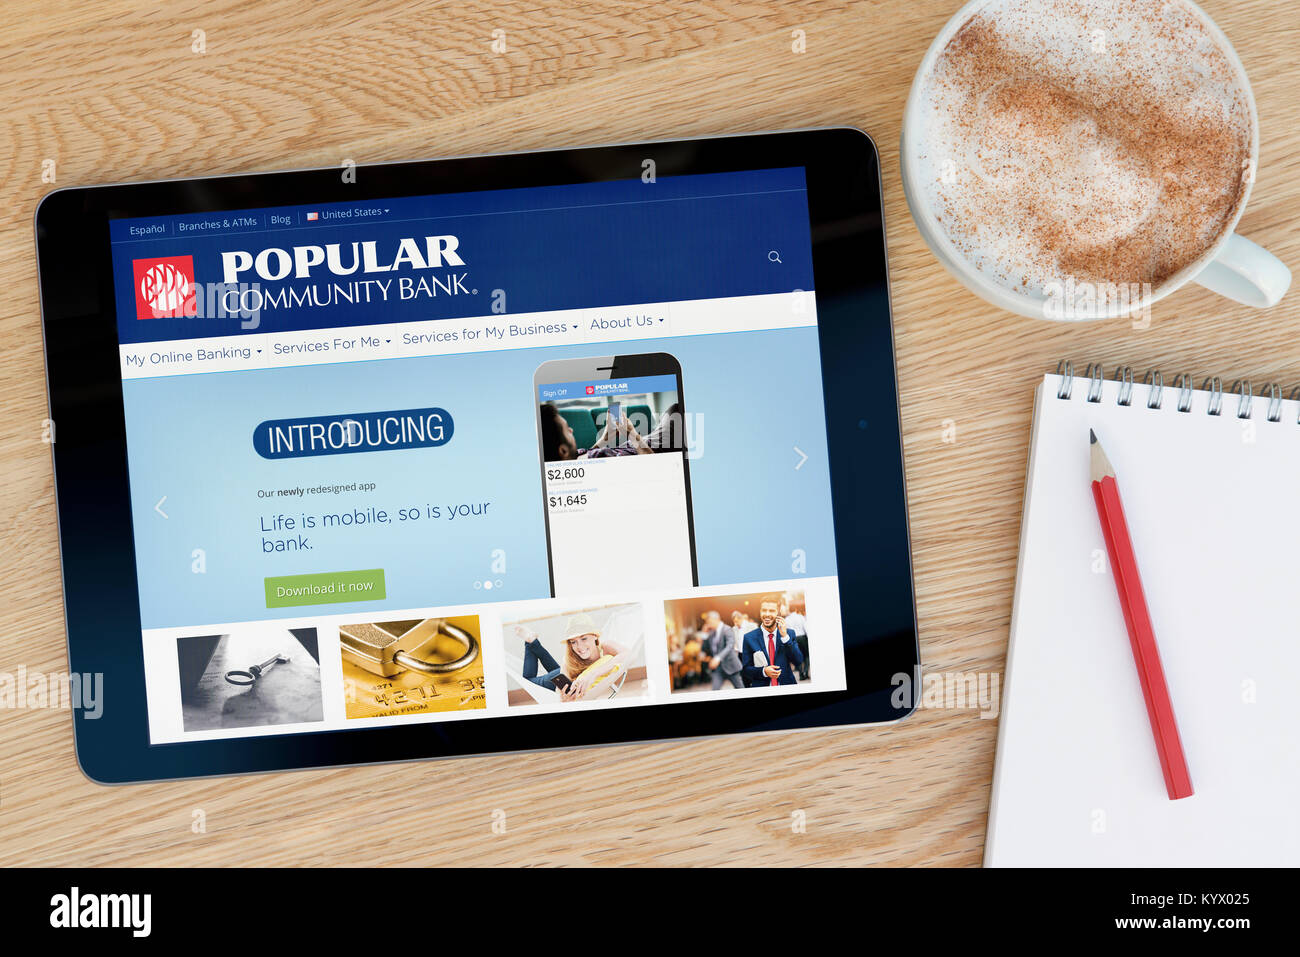 The Popular Community Bank website on an iPad tablet, on a wooden table beside a notepad, pencil and cup of coffee - Stock Image